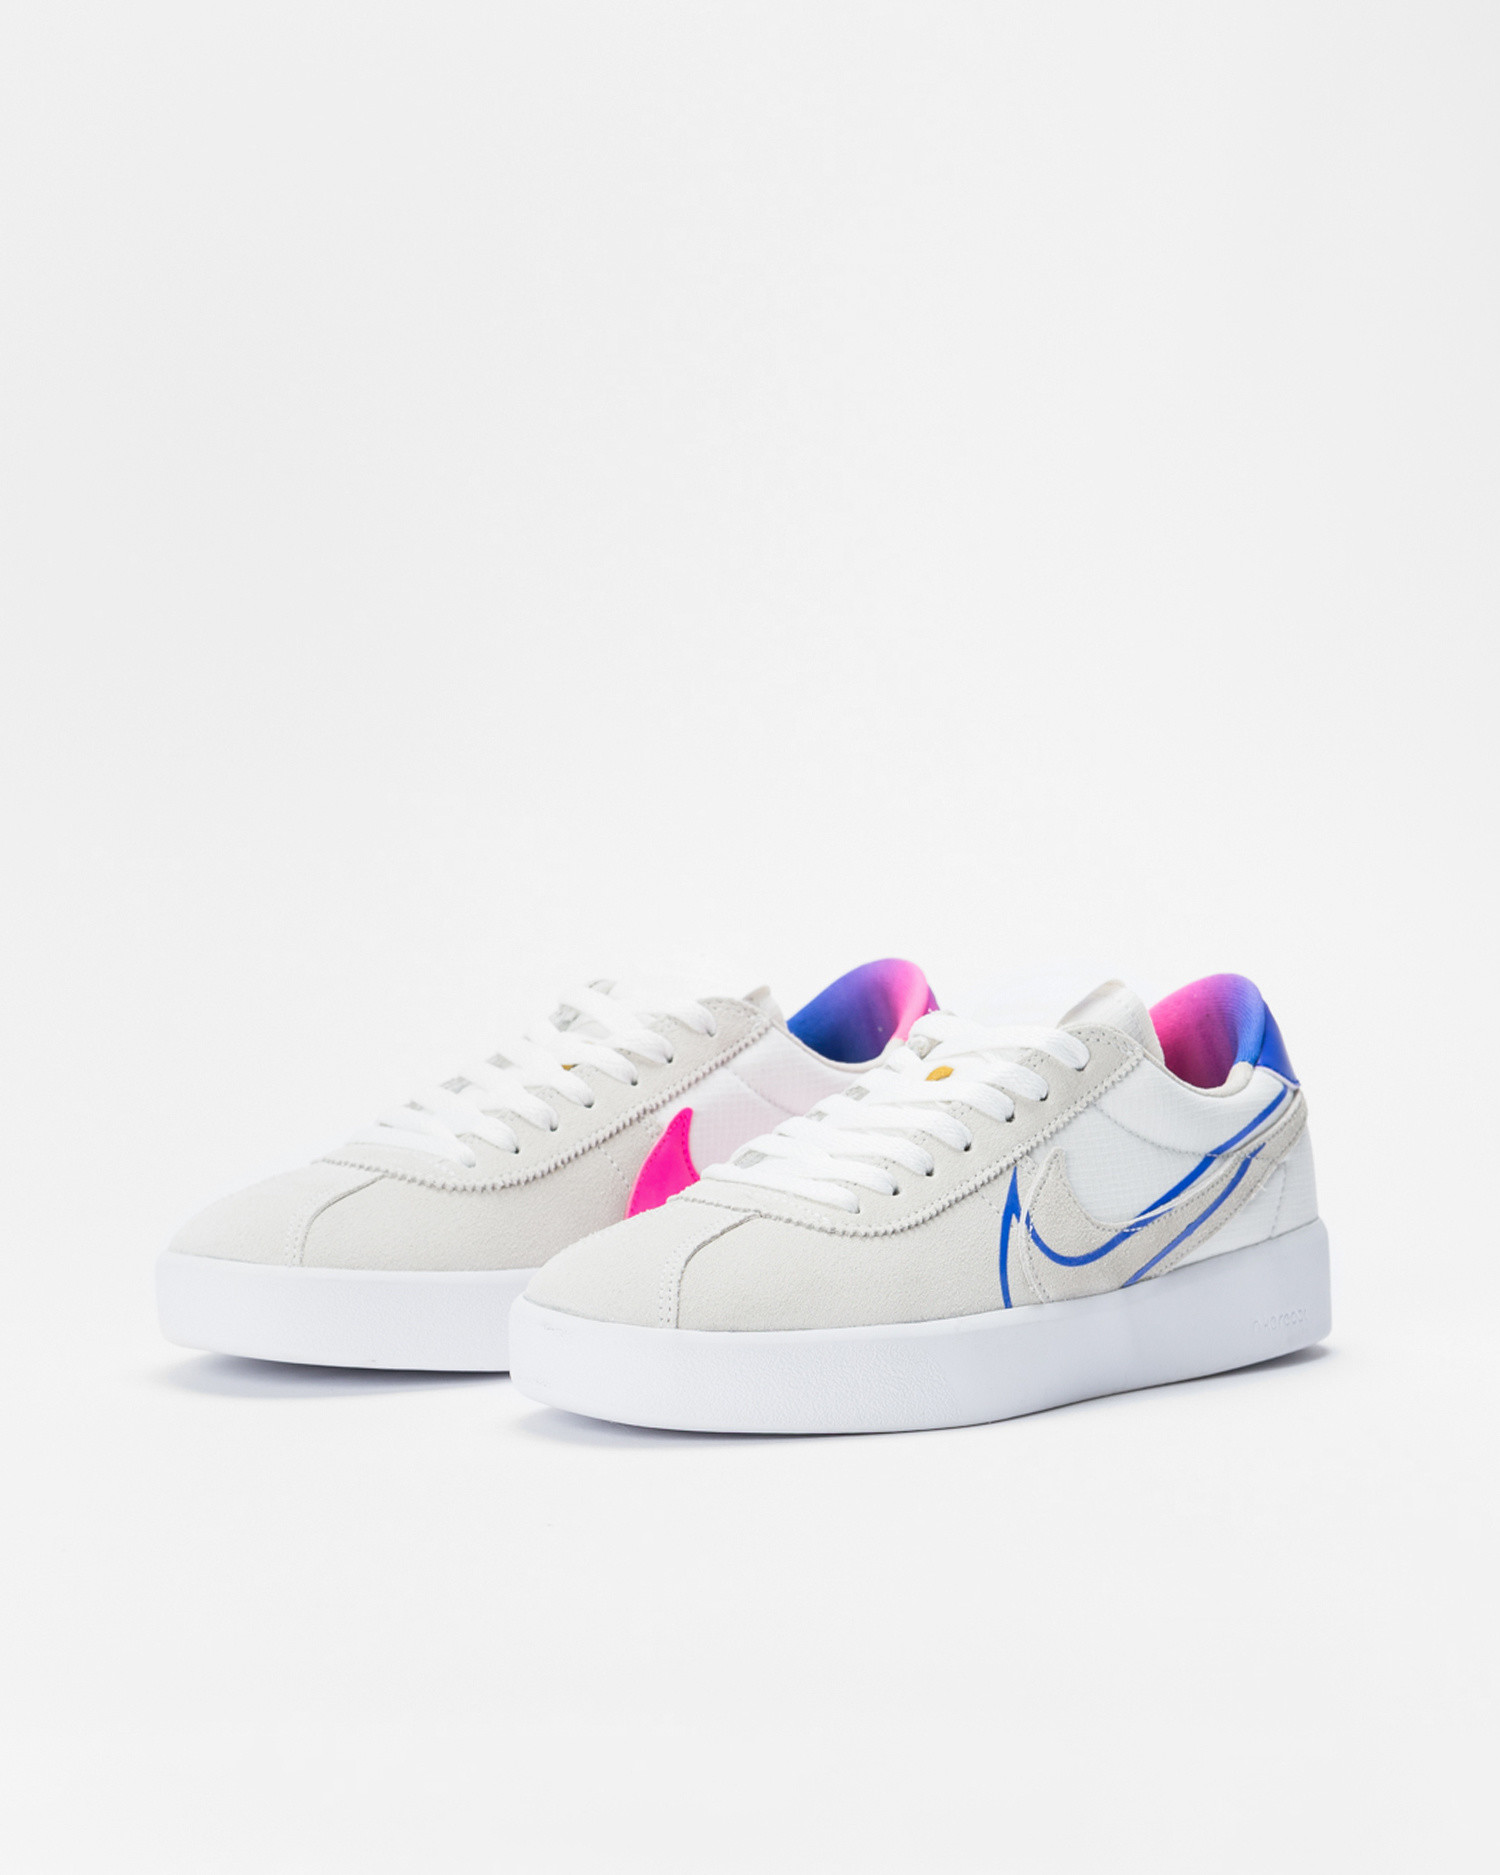 Nike Sb Bruin React Summit White/Racer Blue-Pink Blast